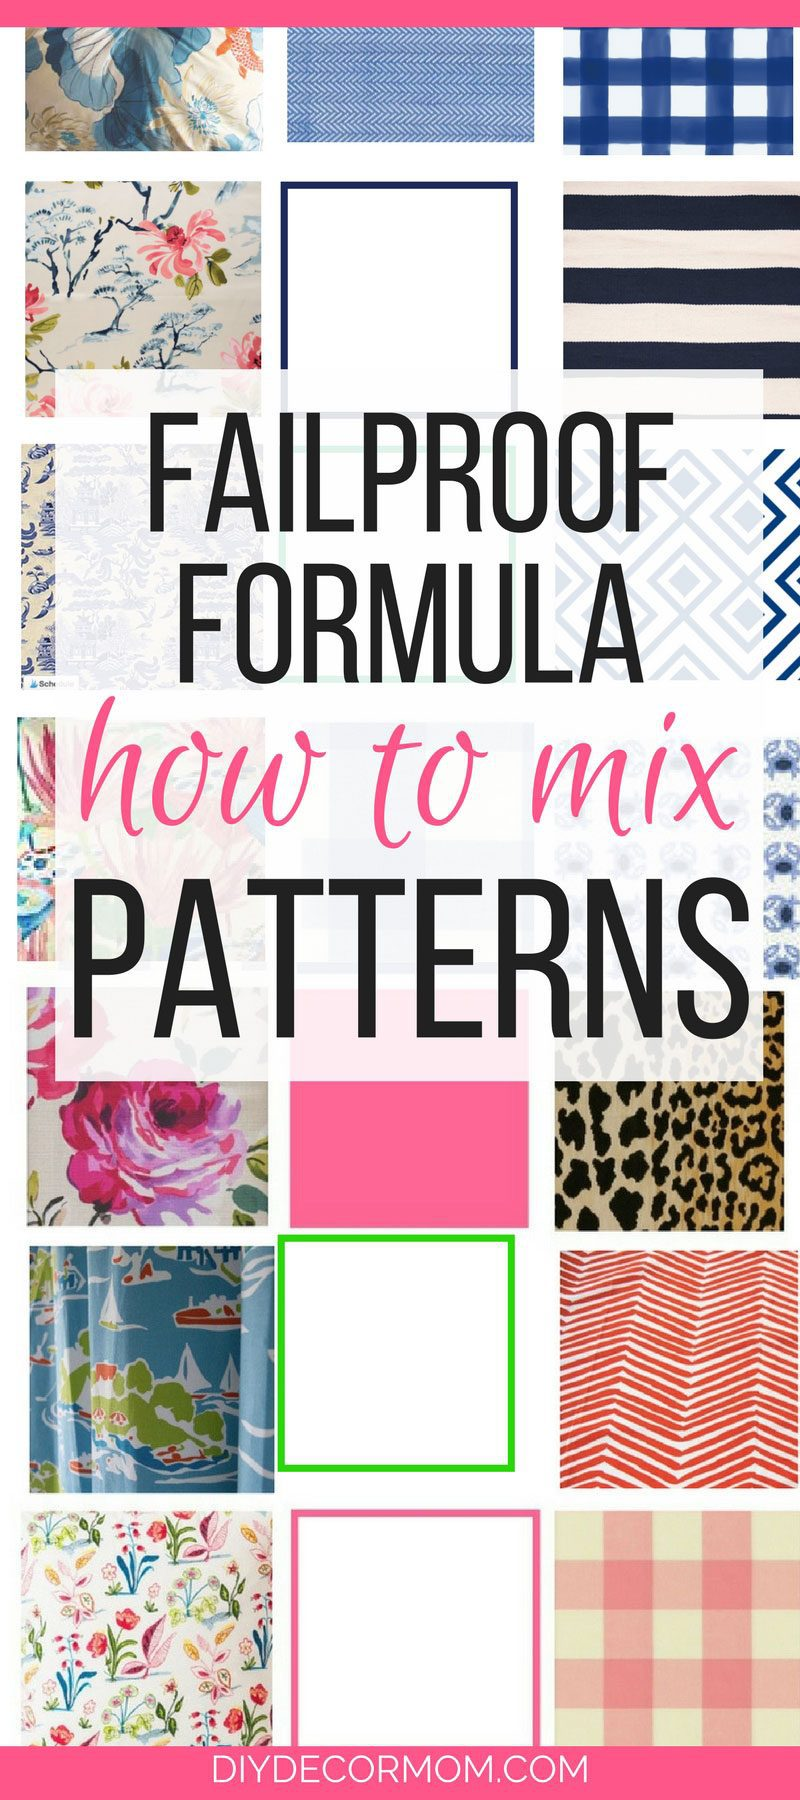 mix fabric patterns and fabrics formula by home decor blogger DIY Decor Mom